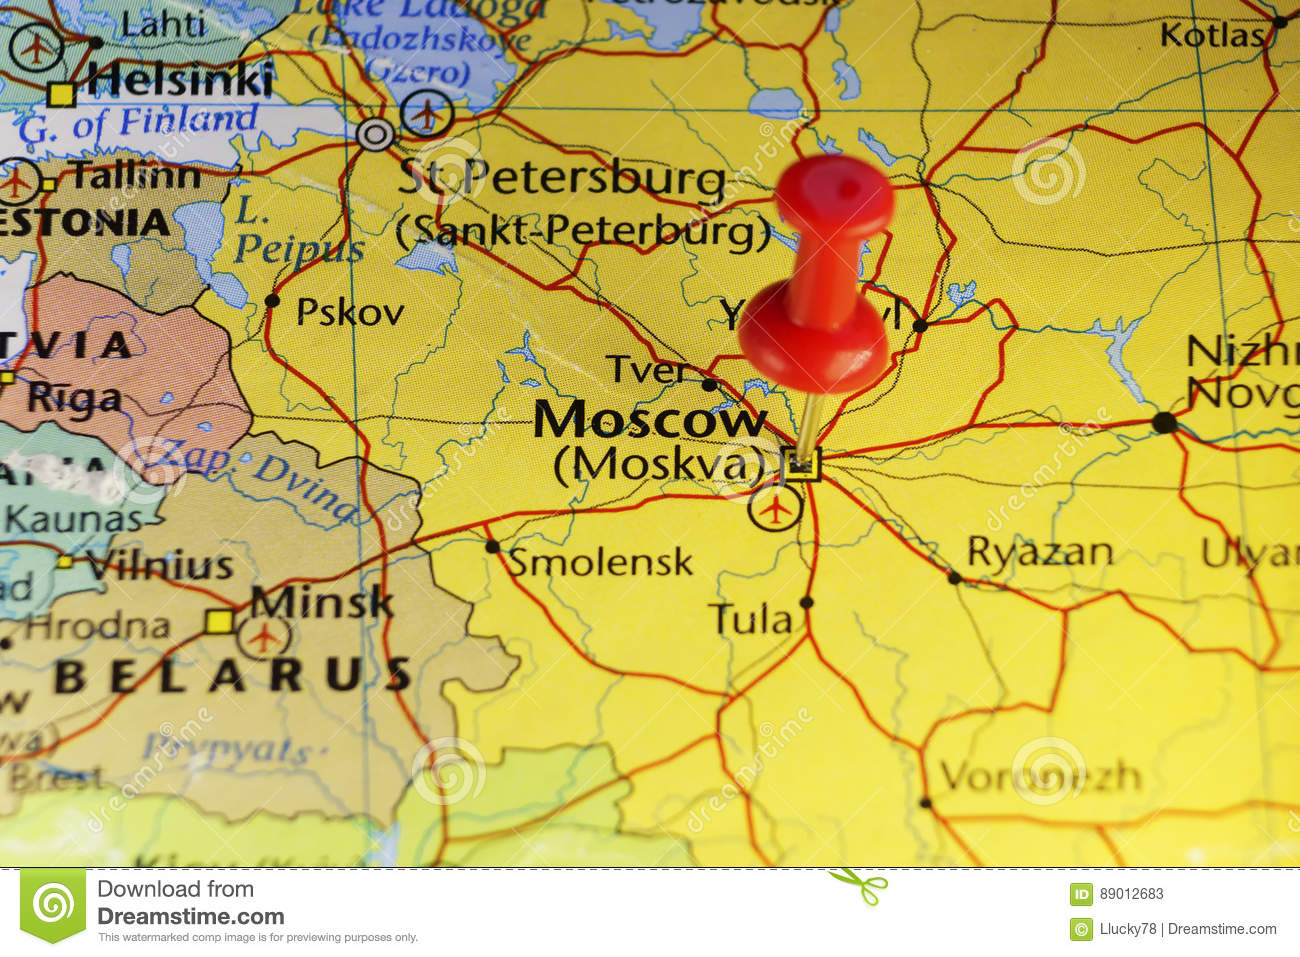 Moscow Russia pinned map stock illustration. Illustration of copy